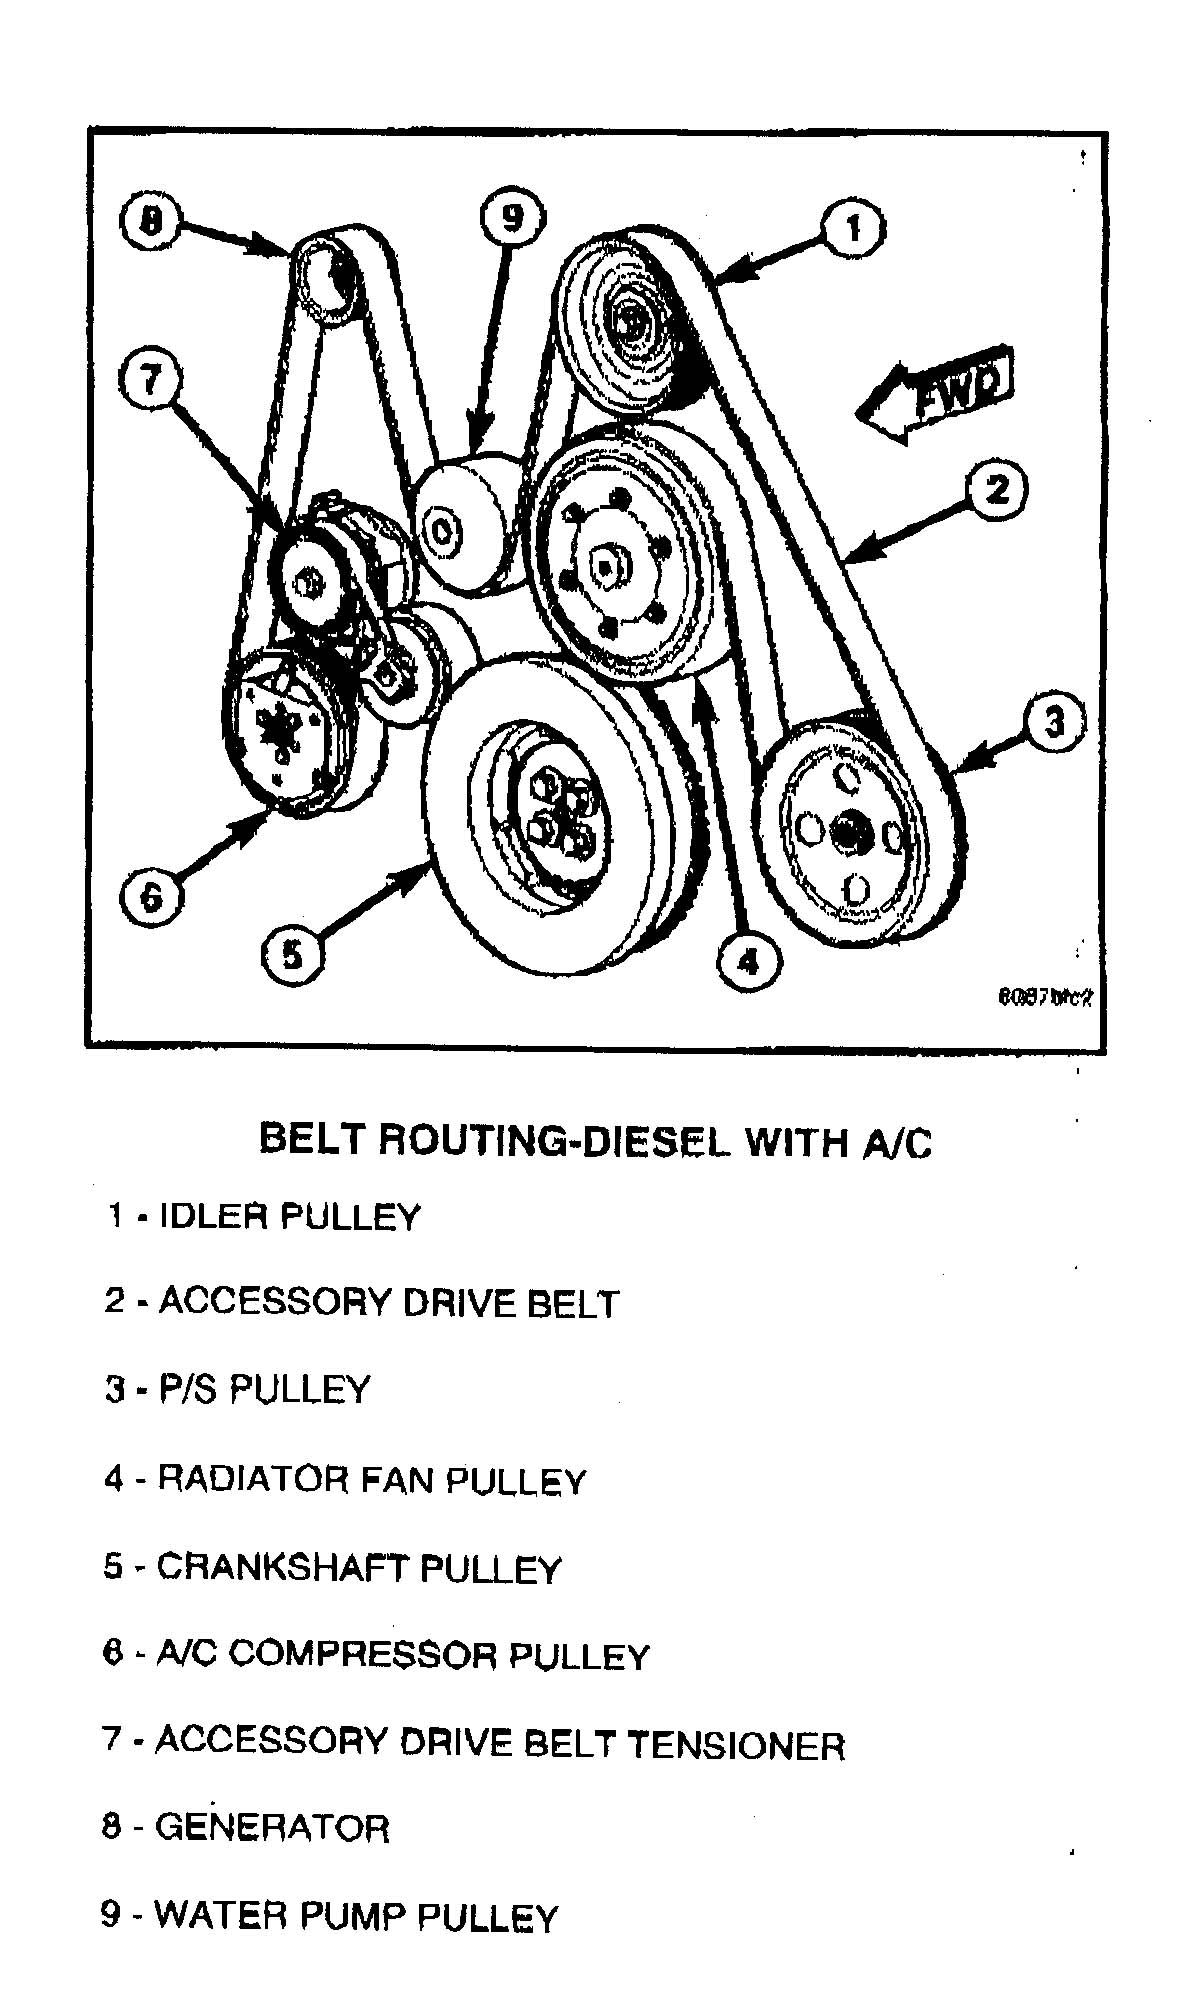 hight resolution of 6 7 belt routing diagram dodge diesel diesel truck resource 2008 ford f 250 6 4 belt diagram